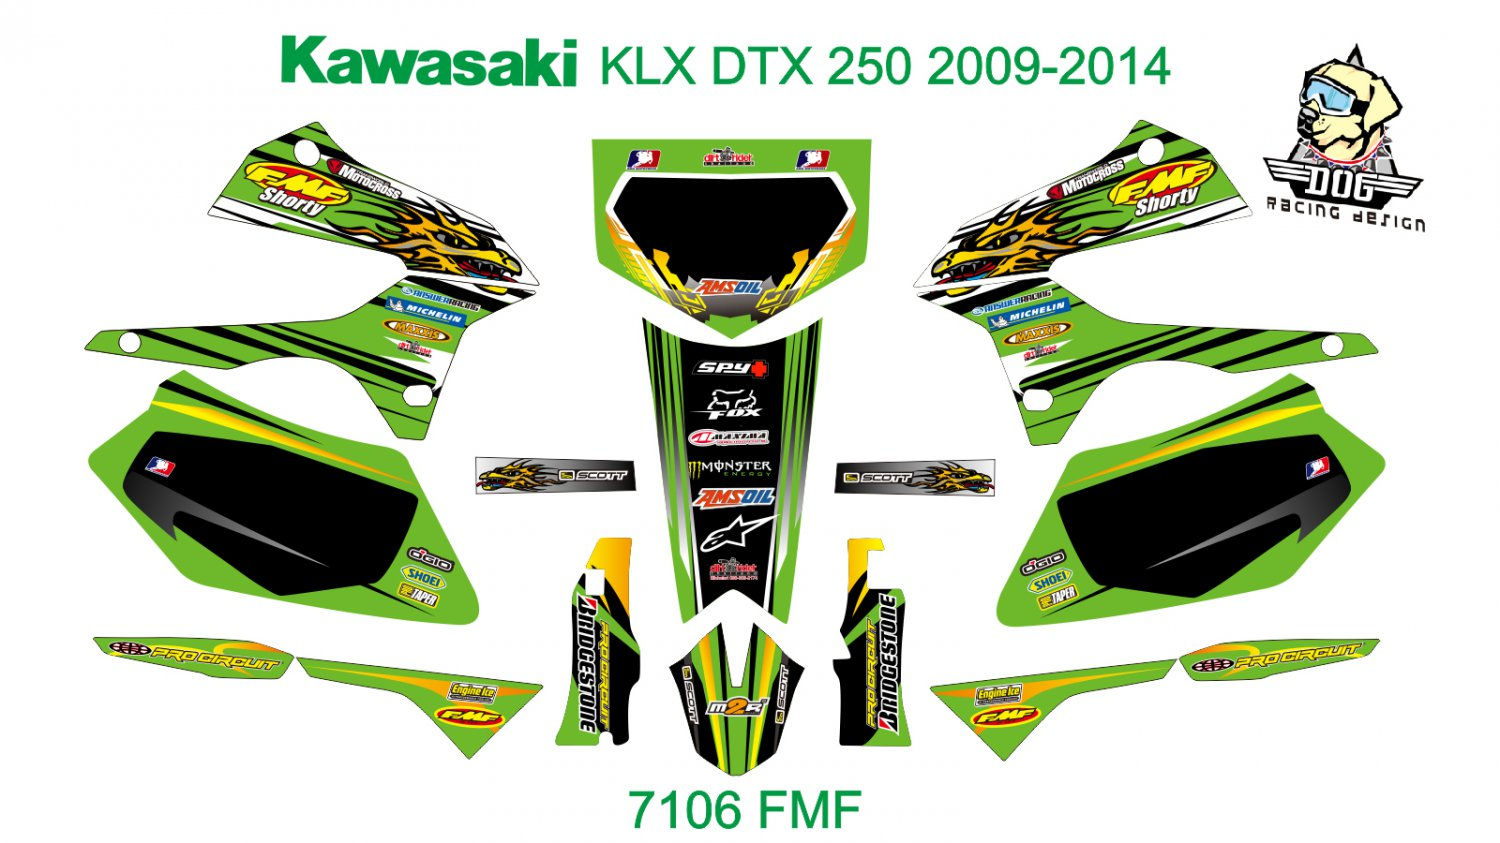 KAWASAKI KLX DTX 250 2009-2014 GRAPHIC DECAL KIT CODE.7106